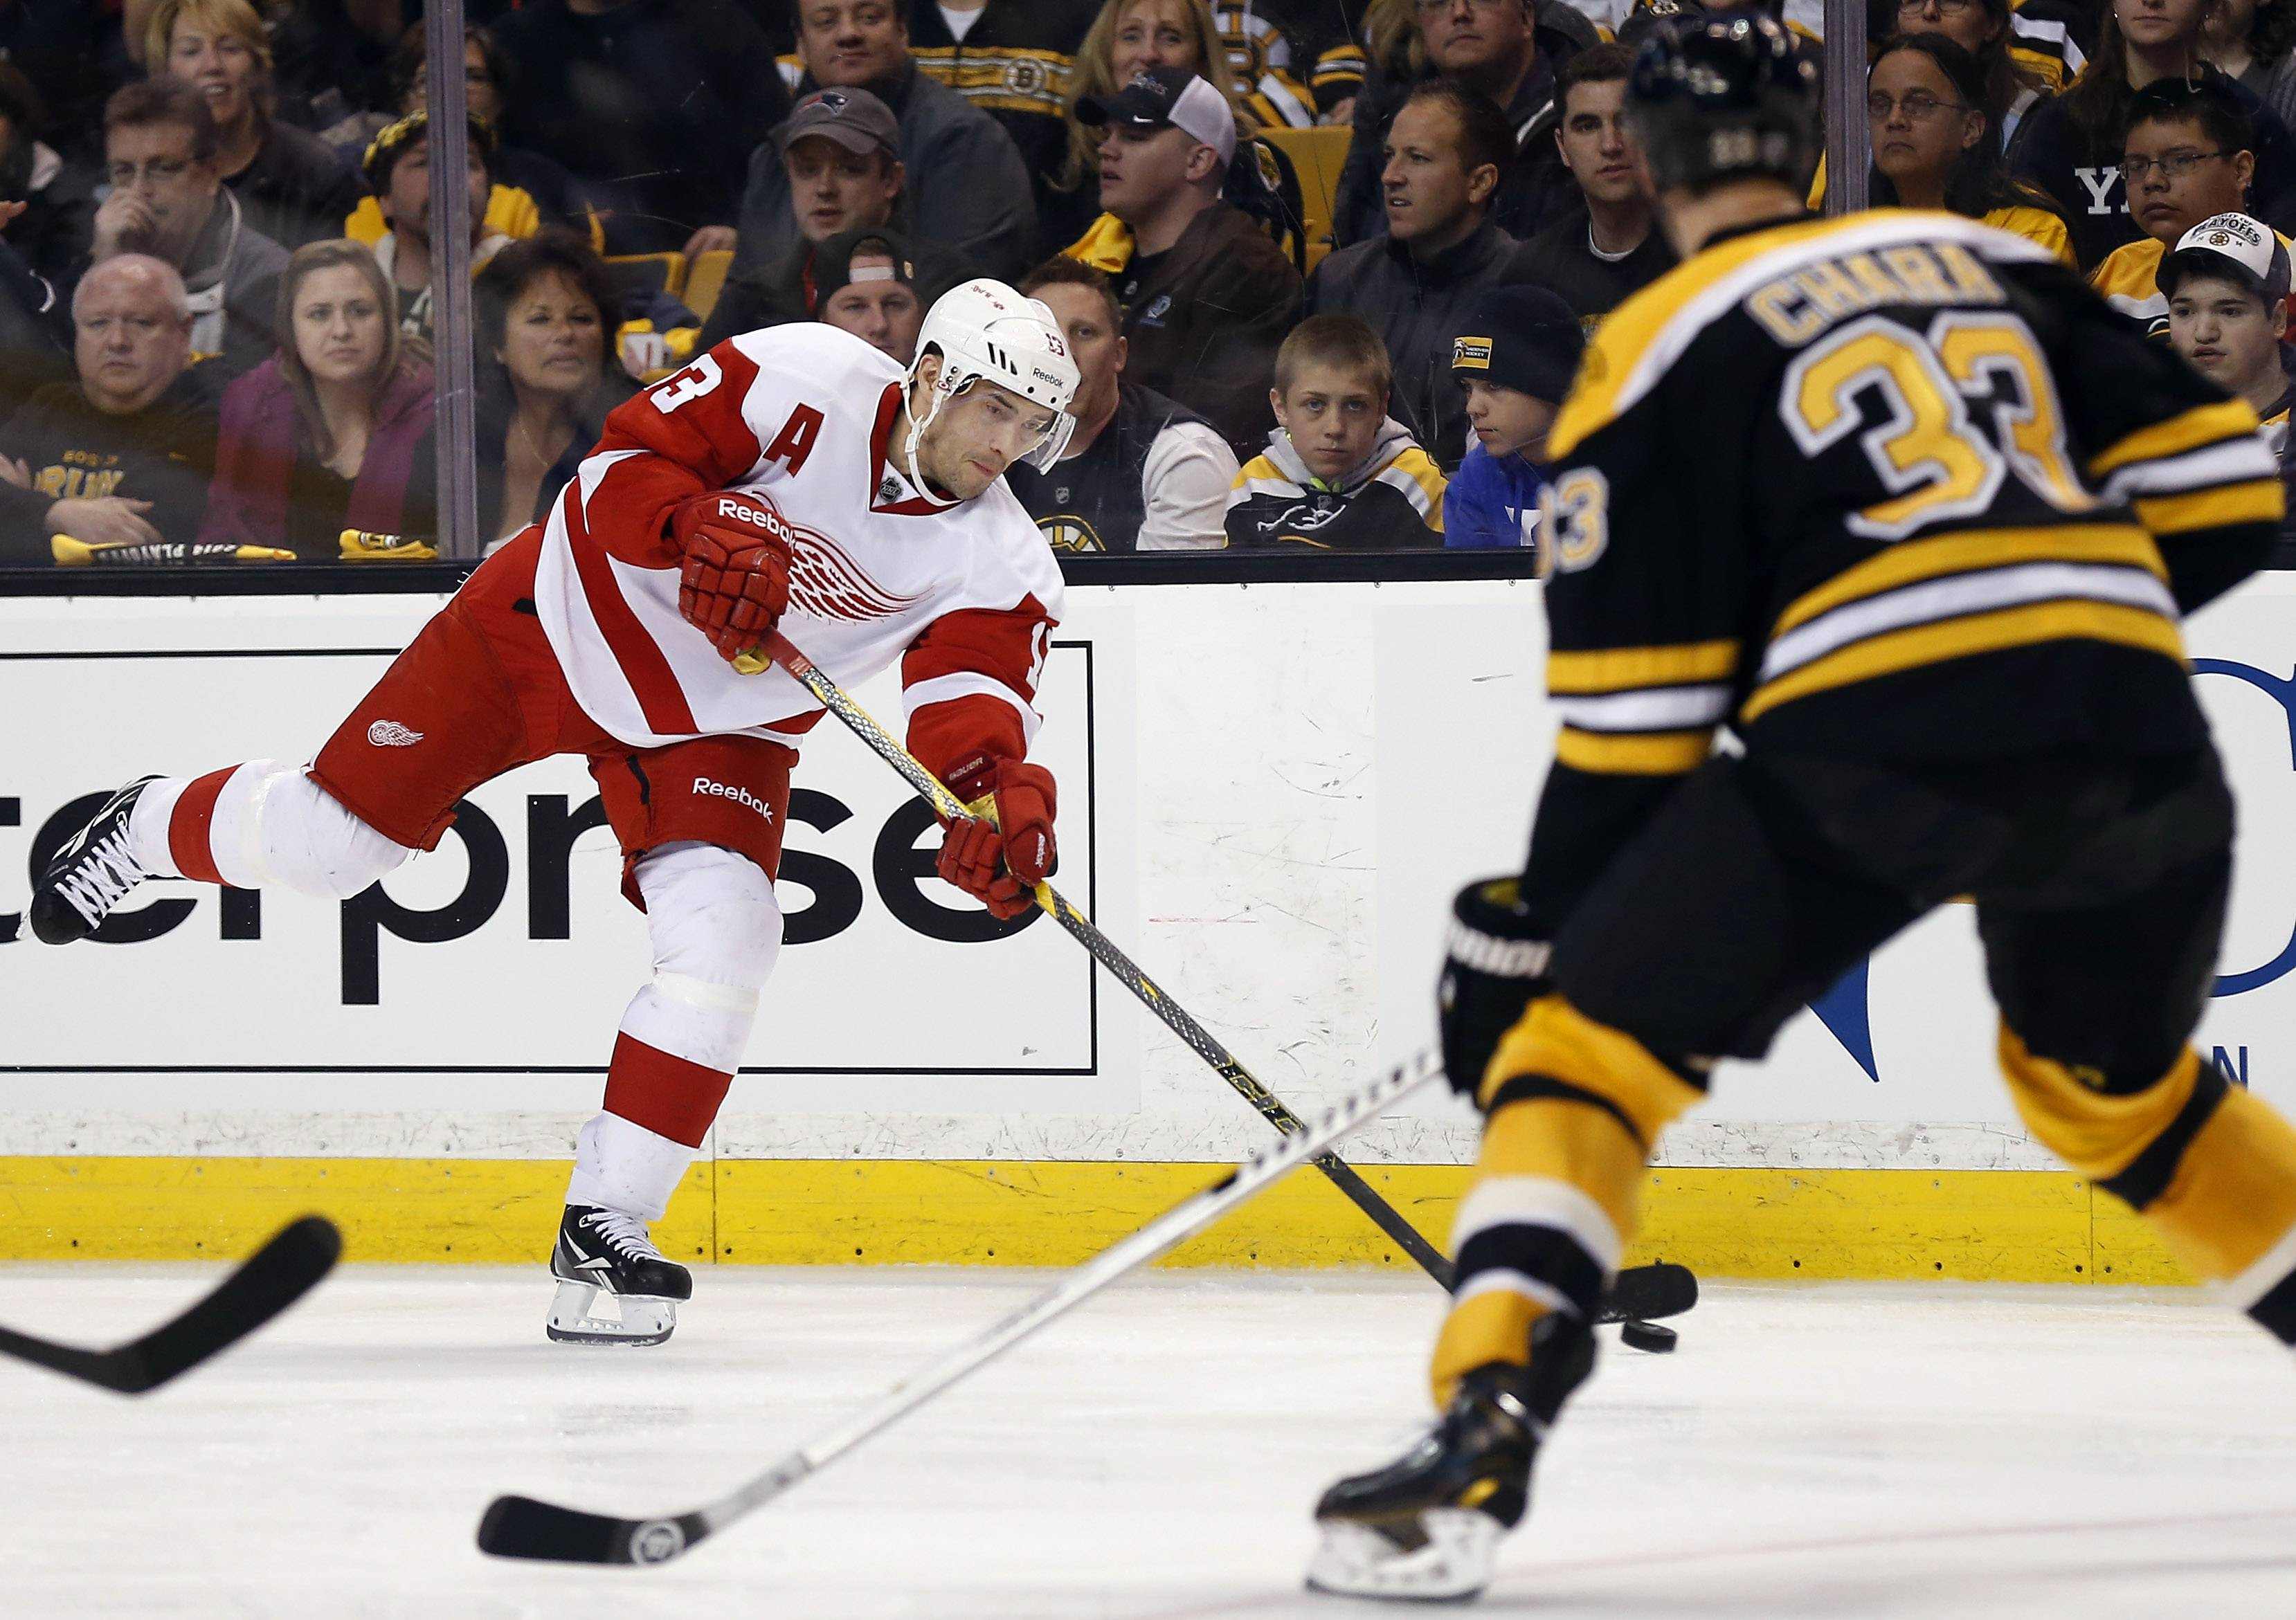 Detroit Red Wings' Pavel Datsyuk lets go a shot as Boston Bruins defenseman Zdeno Chara (33) defends during the third period of Detroit's 1-0 win in Game 1 of a first-round NHL playoff hockey series, in Boston on Friday, April 18, 2014.